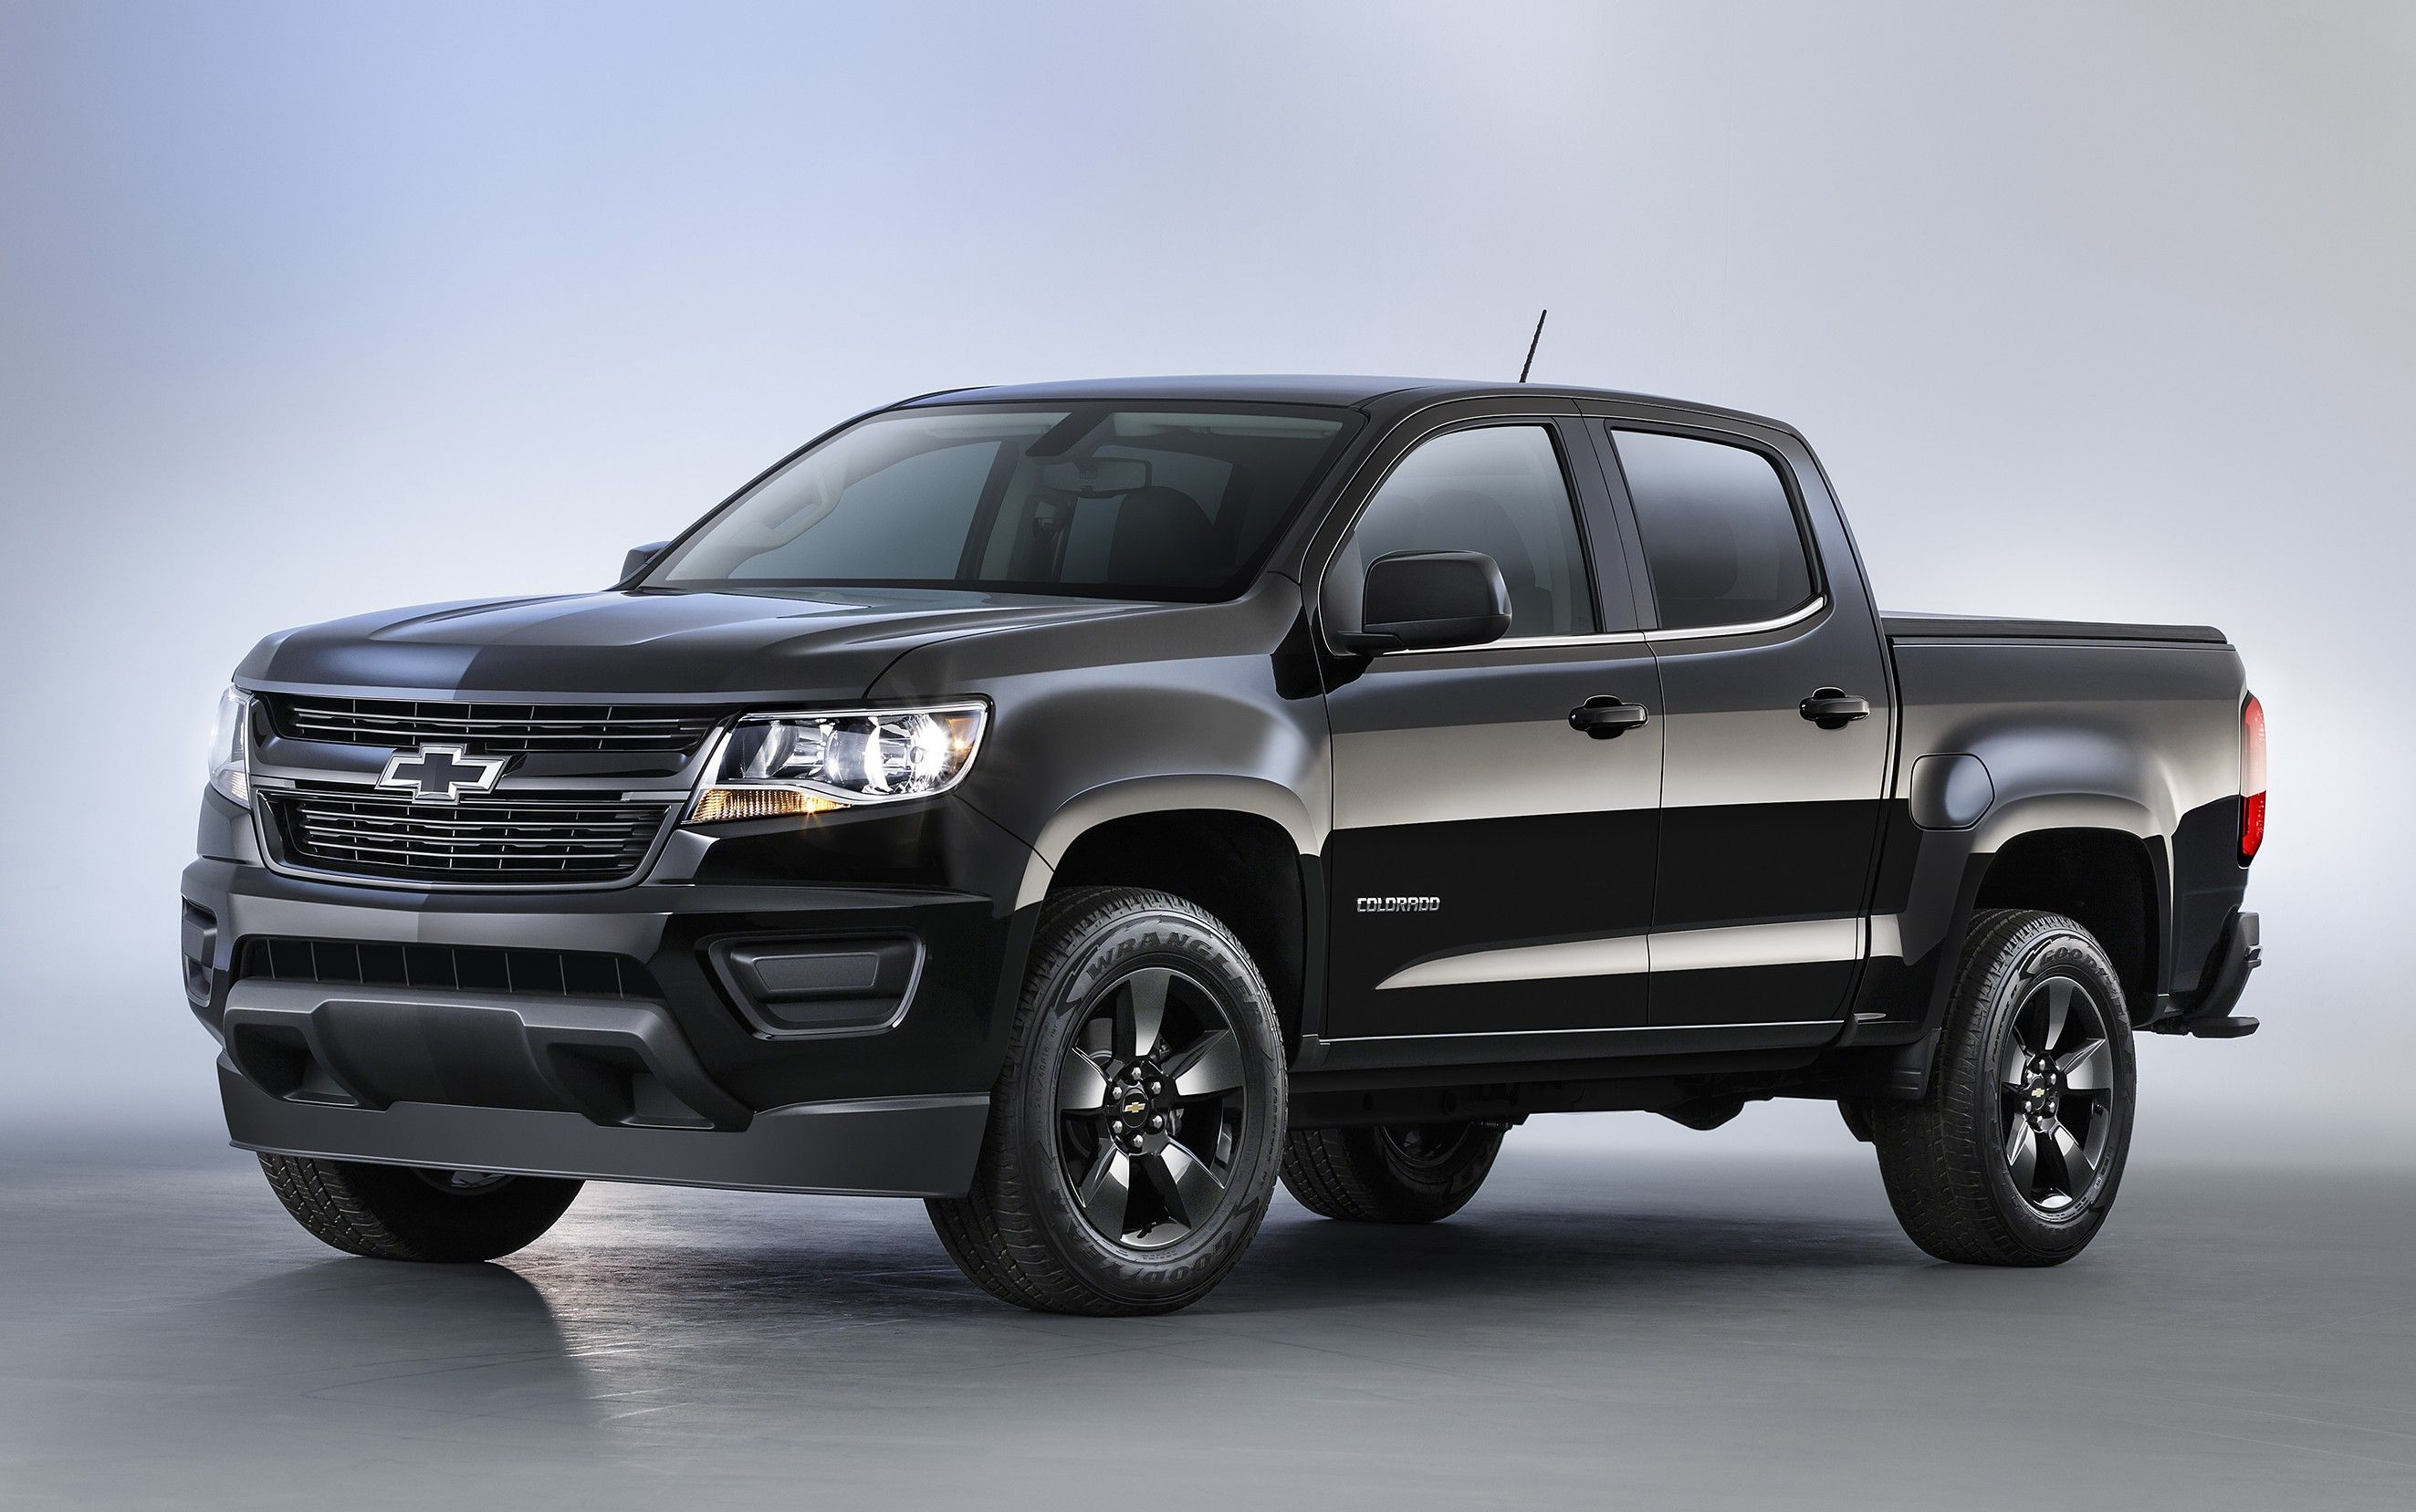 The 25 best chevy colorado 2016 ideas on pinterest colorado chevy chevrolet colorado and chevy colorado duramax